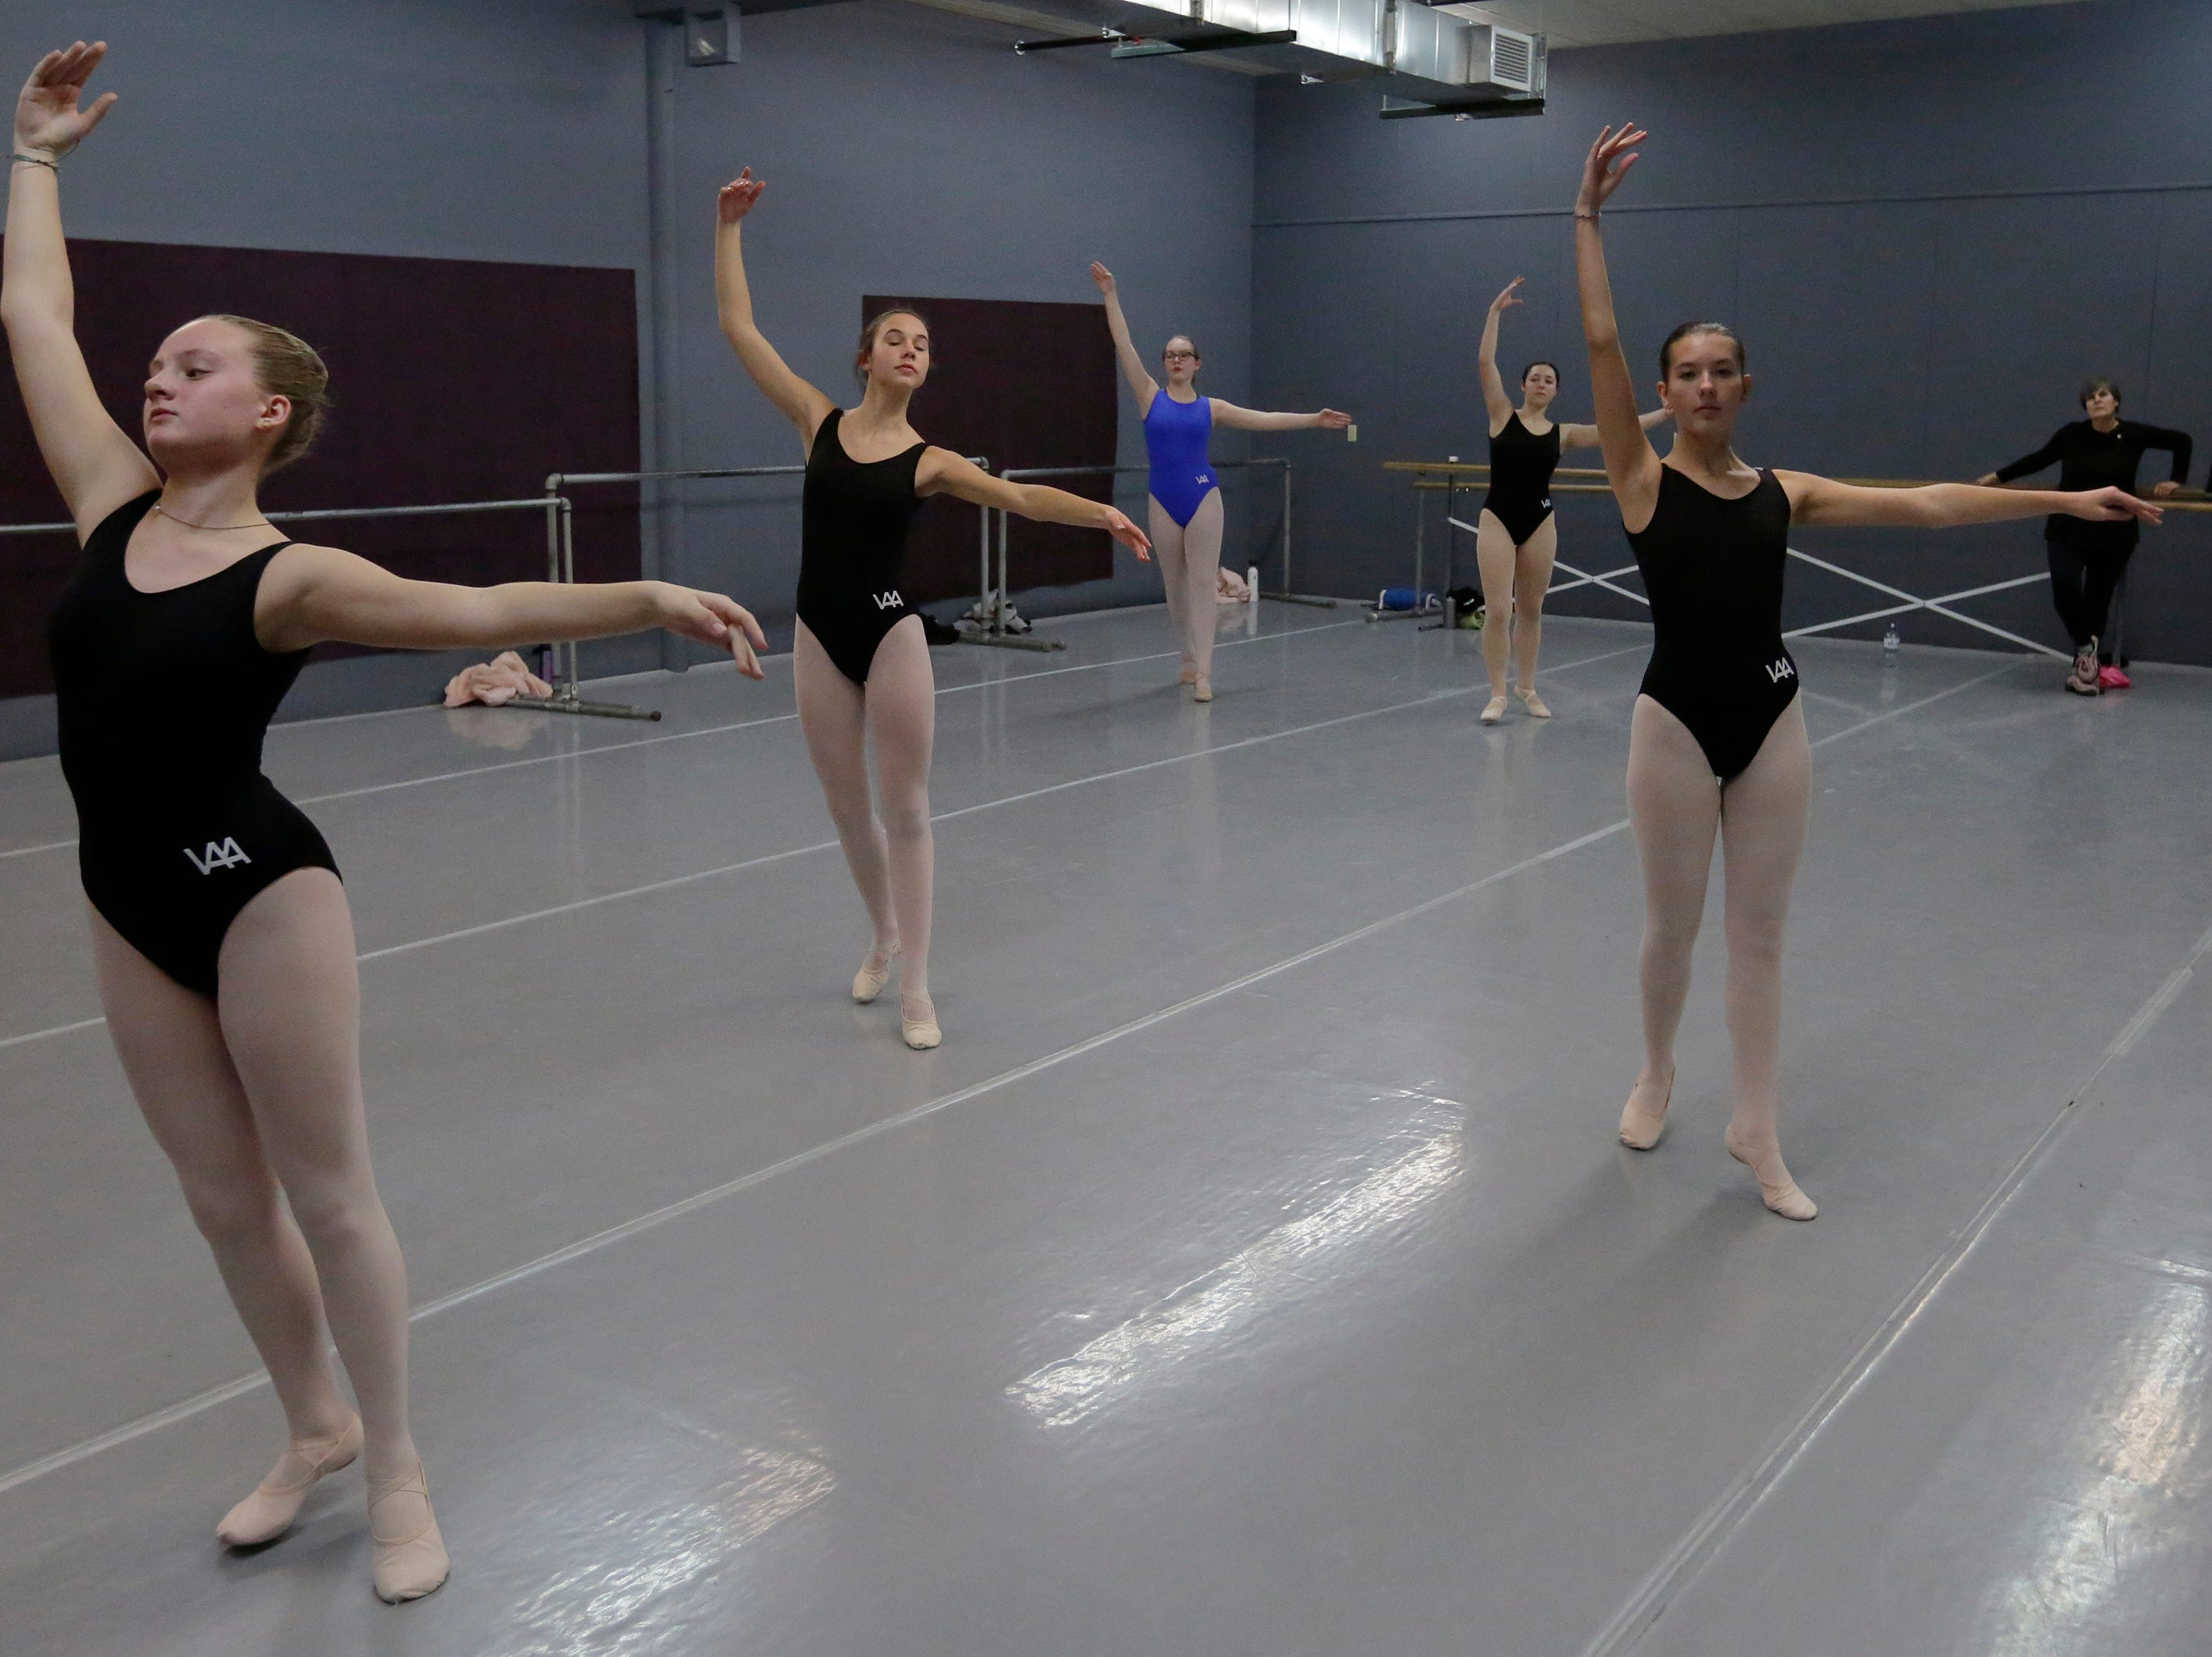 Dancers practice ballet at Valley Academy of the Arts located at 139 N. Lake Street in Neenah, Wis., Tuesday, December 4, 2018.